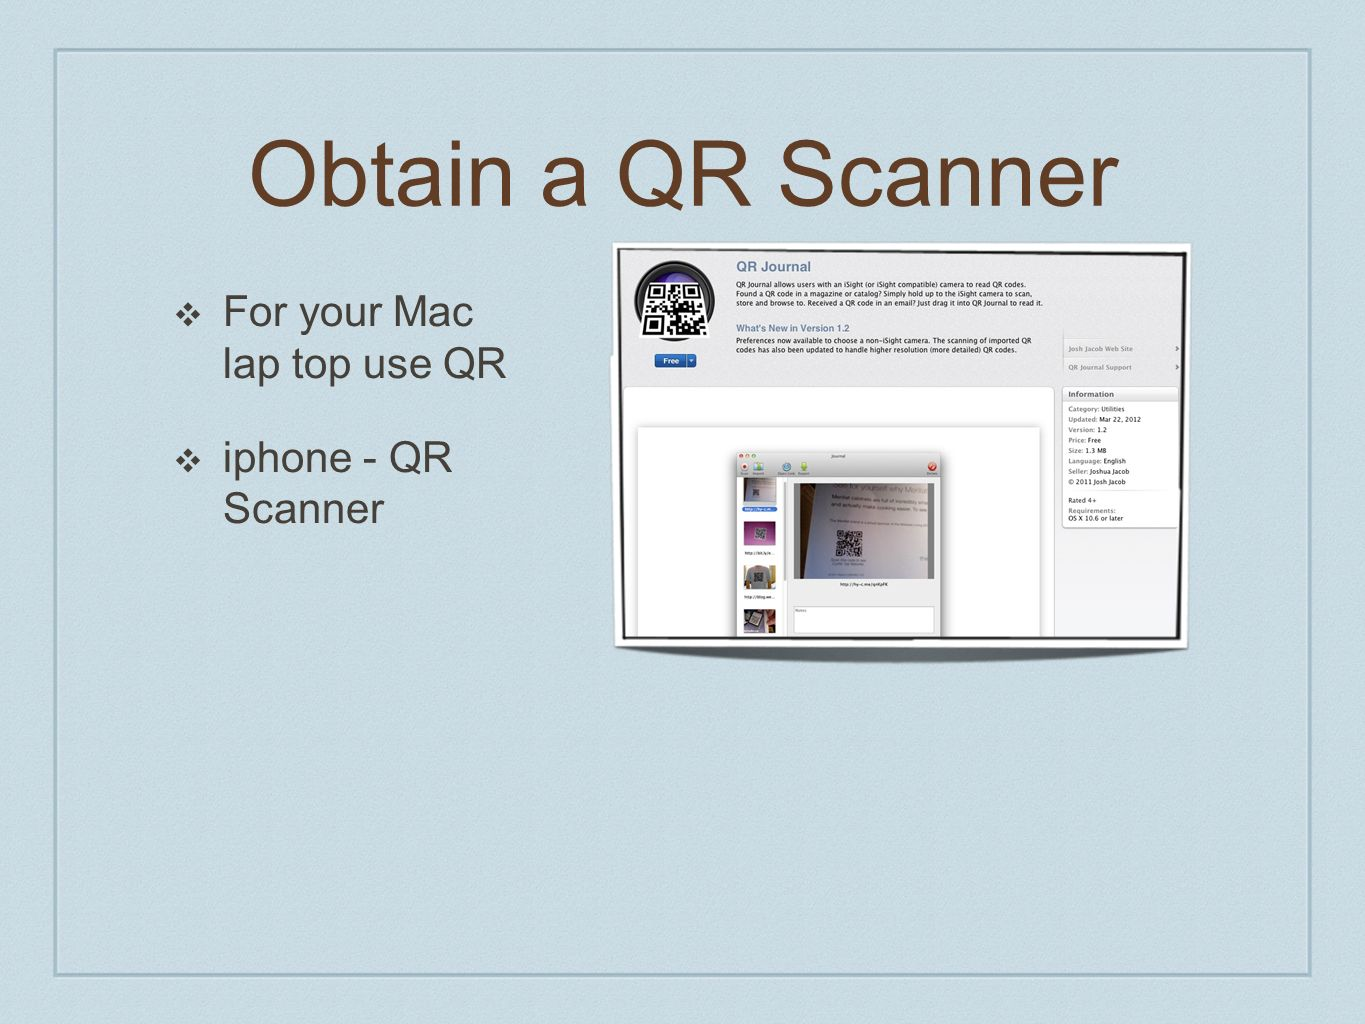 Obtain a QR Scanner For your Mac lap top use QR iphone - QR Scanner